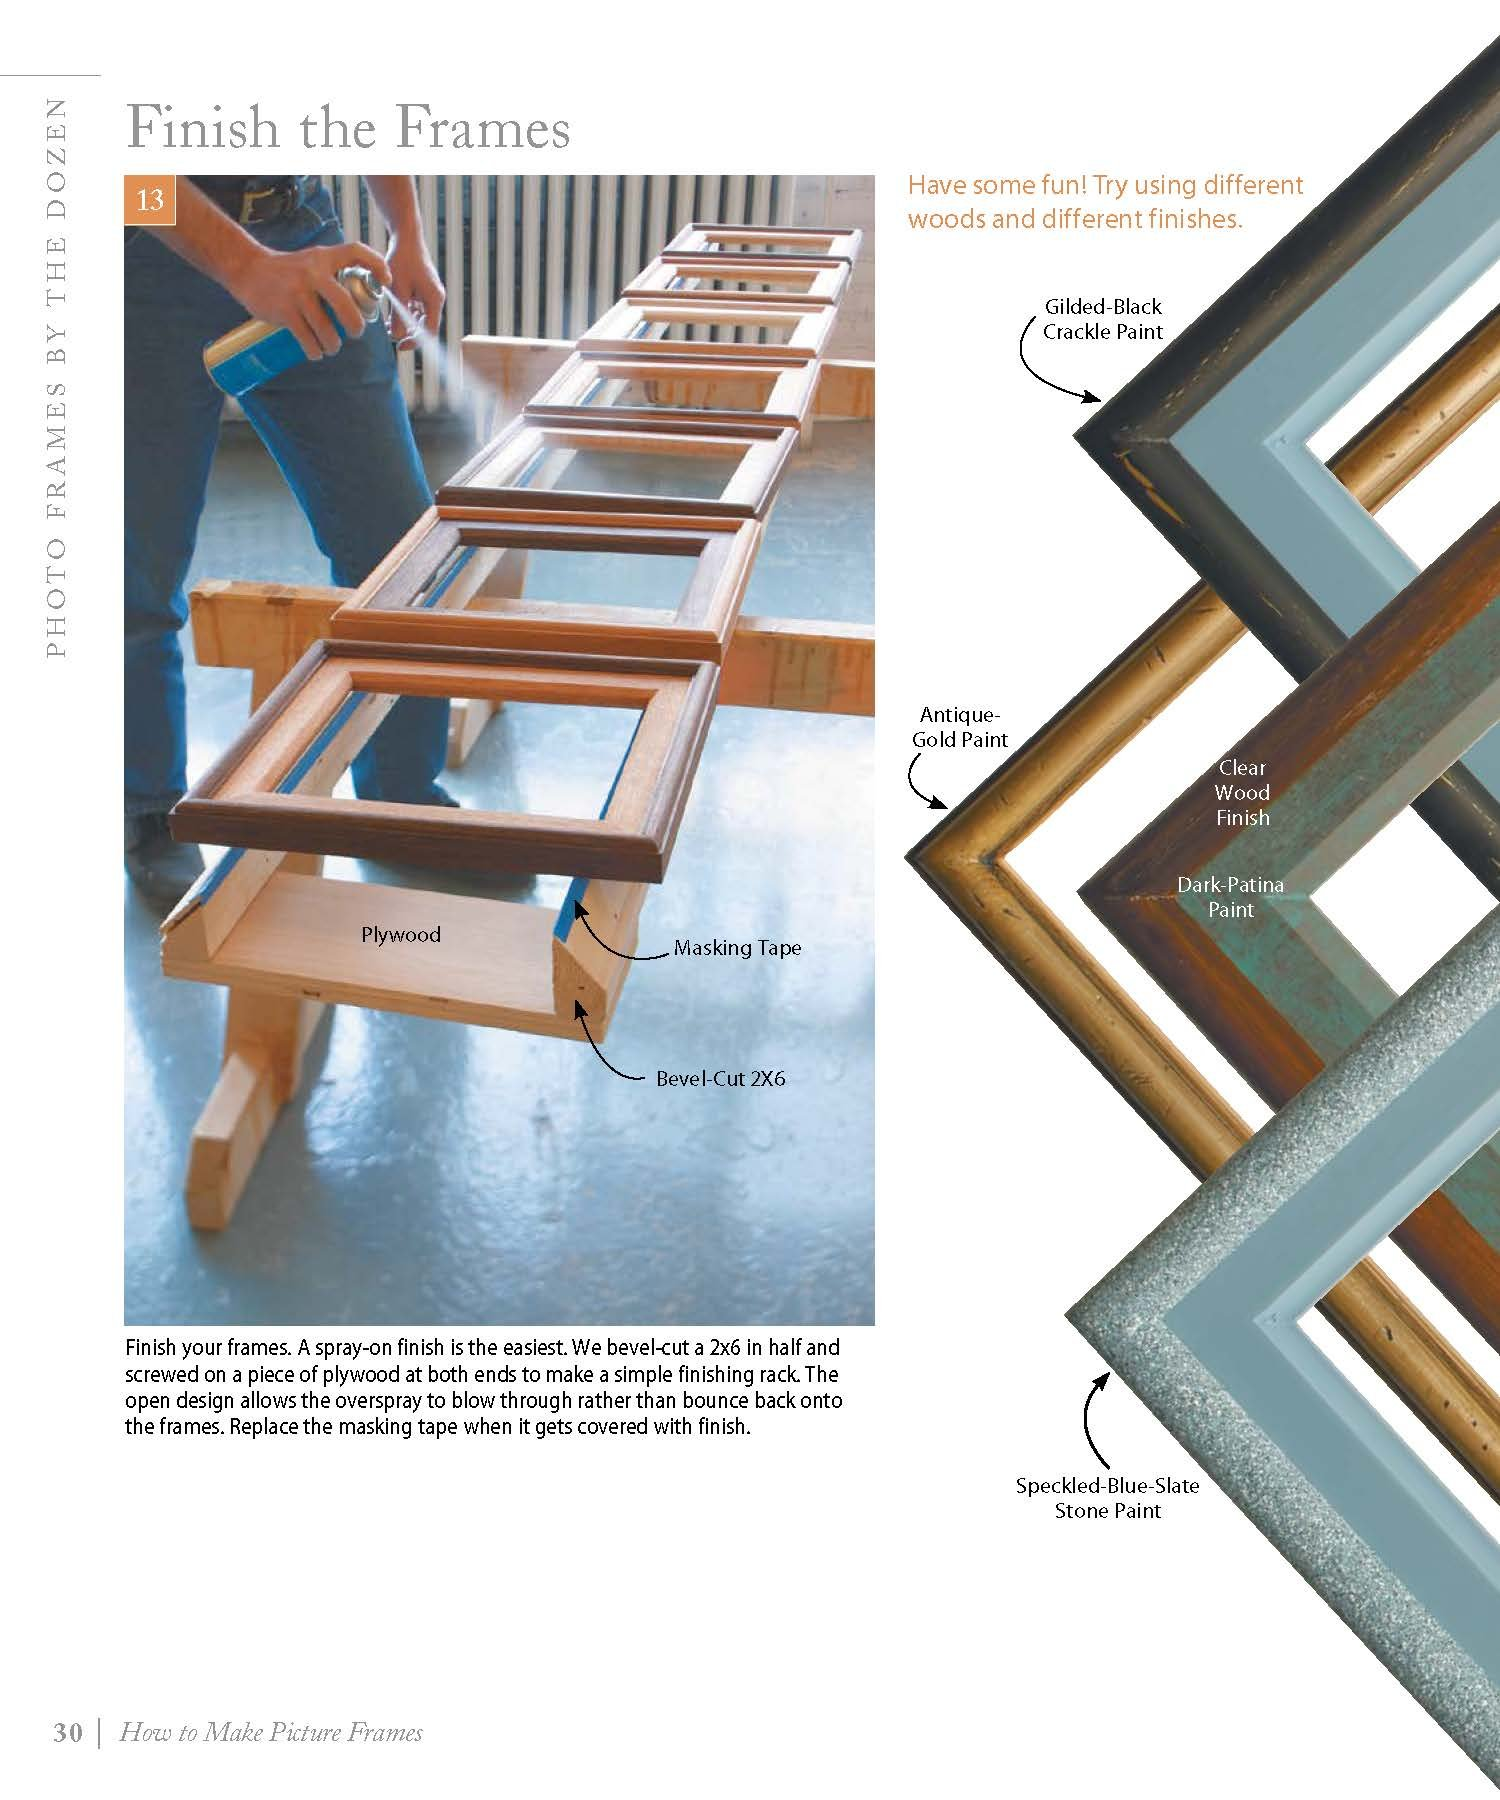 How to make picture frames best of aw 12 simple to stylish how to make picture frames best of aw 12 simple to stylish projects from the experts at american woodworker american woodworker best of american jeuxipadfo Images